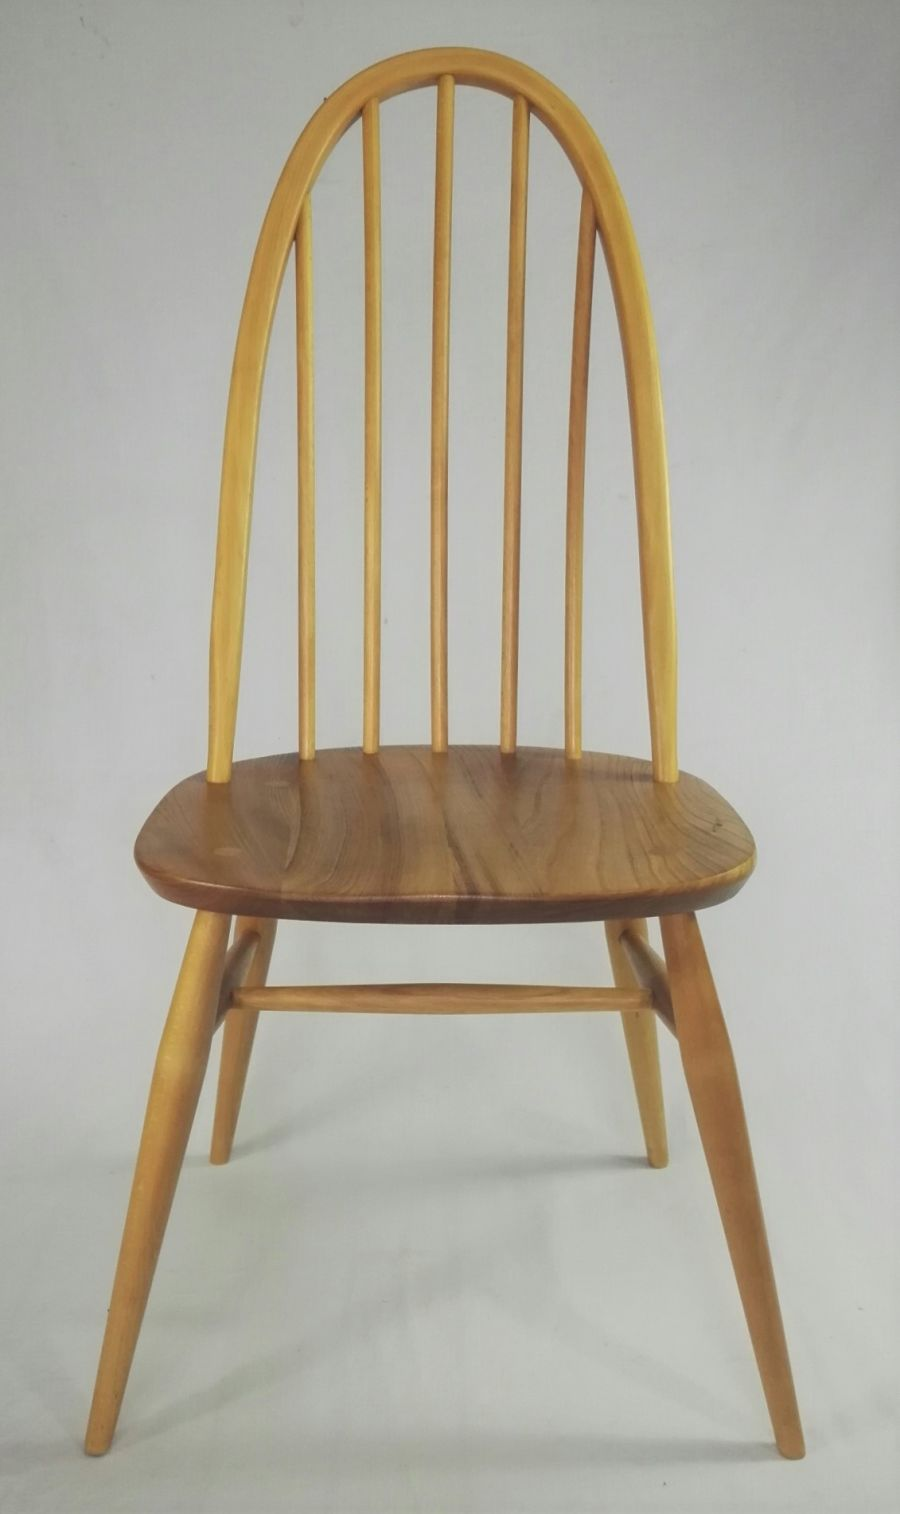 Ercol Windsor 365 Quaker dining chair